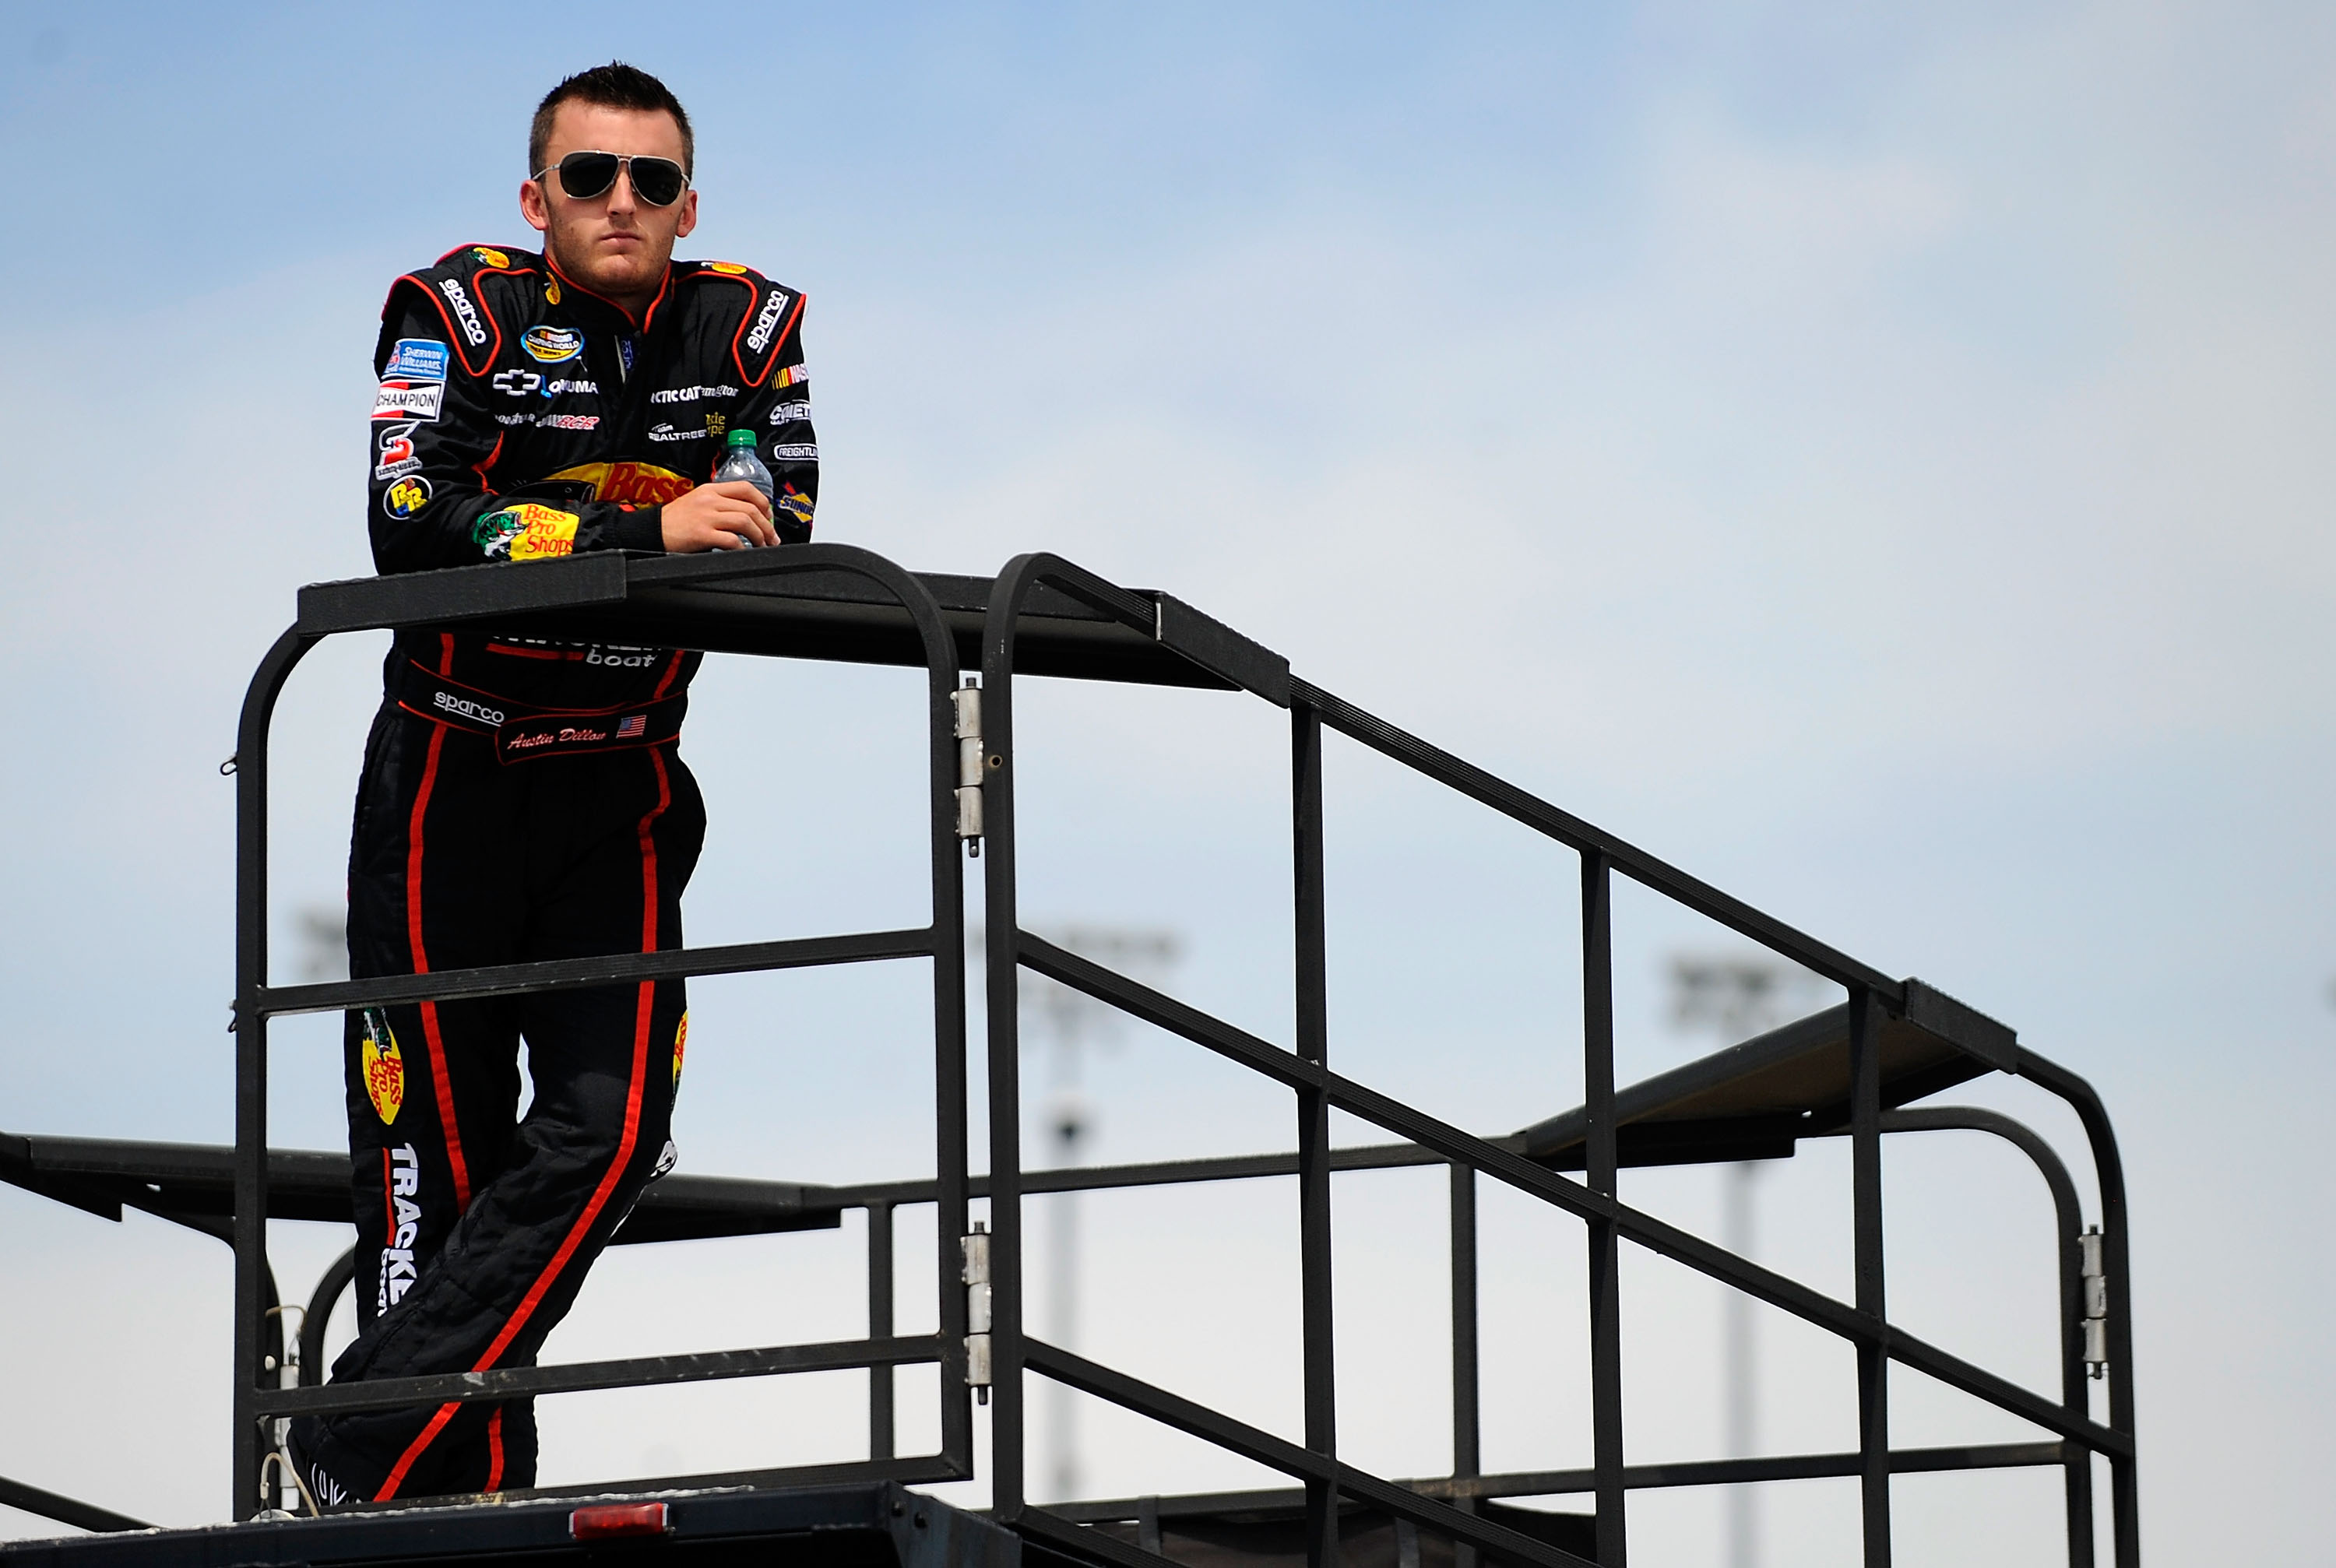 KANSAS CITY, KS - JUNE 03:  Austin Dillon, driver of the #3 Bass Pro Shops/NWTF Chevrolet, looks on during practice for the NASCAR Camping World Truck Series O'Reilly Auto Parts 250 at Kansas Speedway on June 3, 2011 in Kansas City, Kansas.  (Photo by Jar